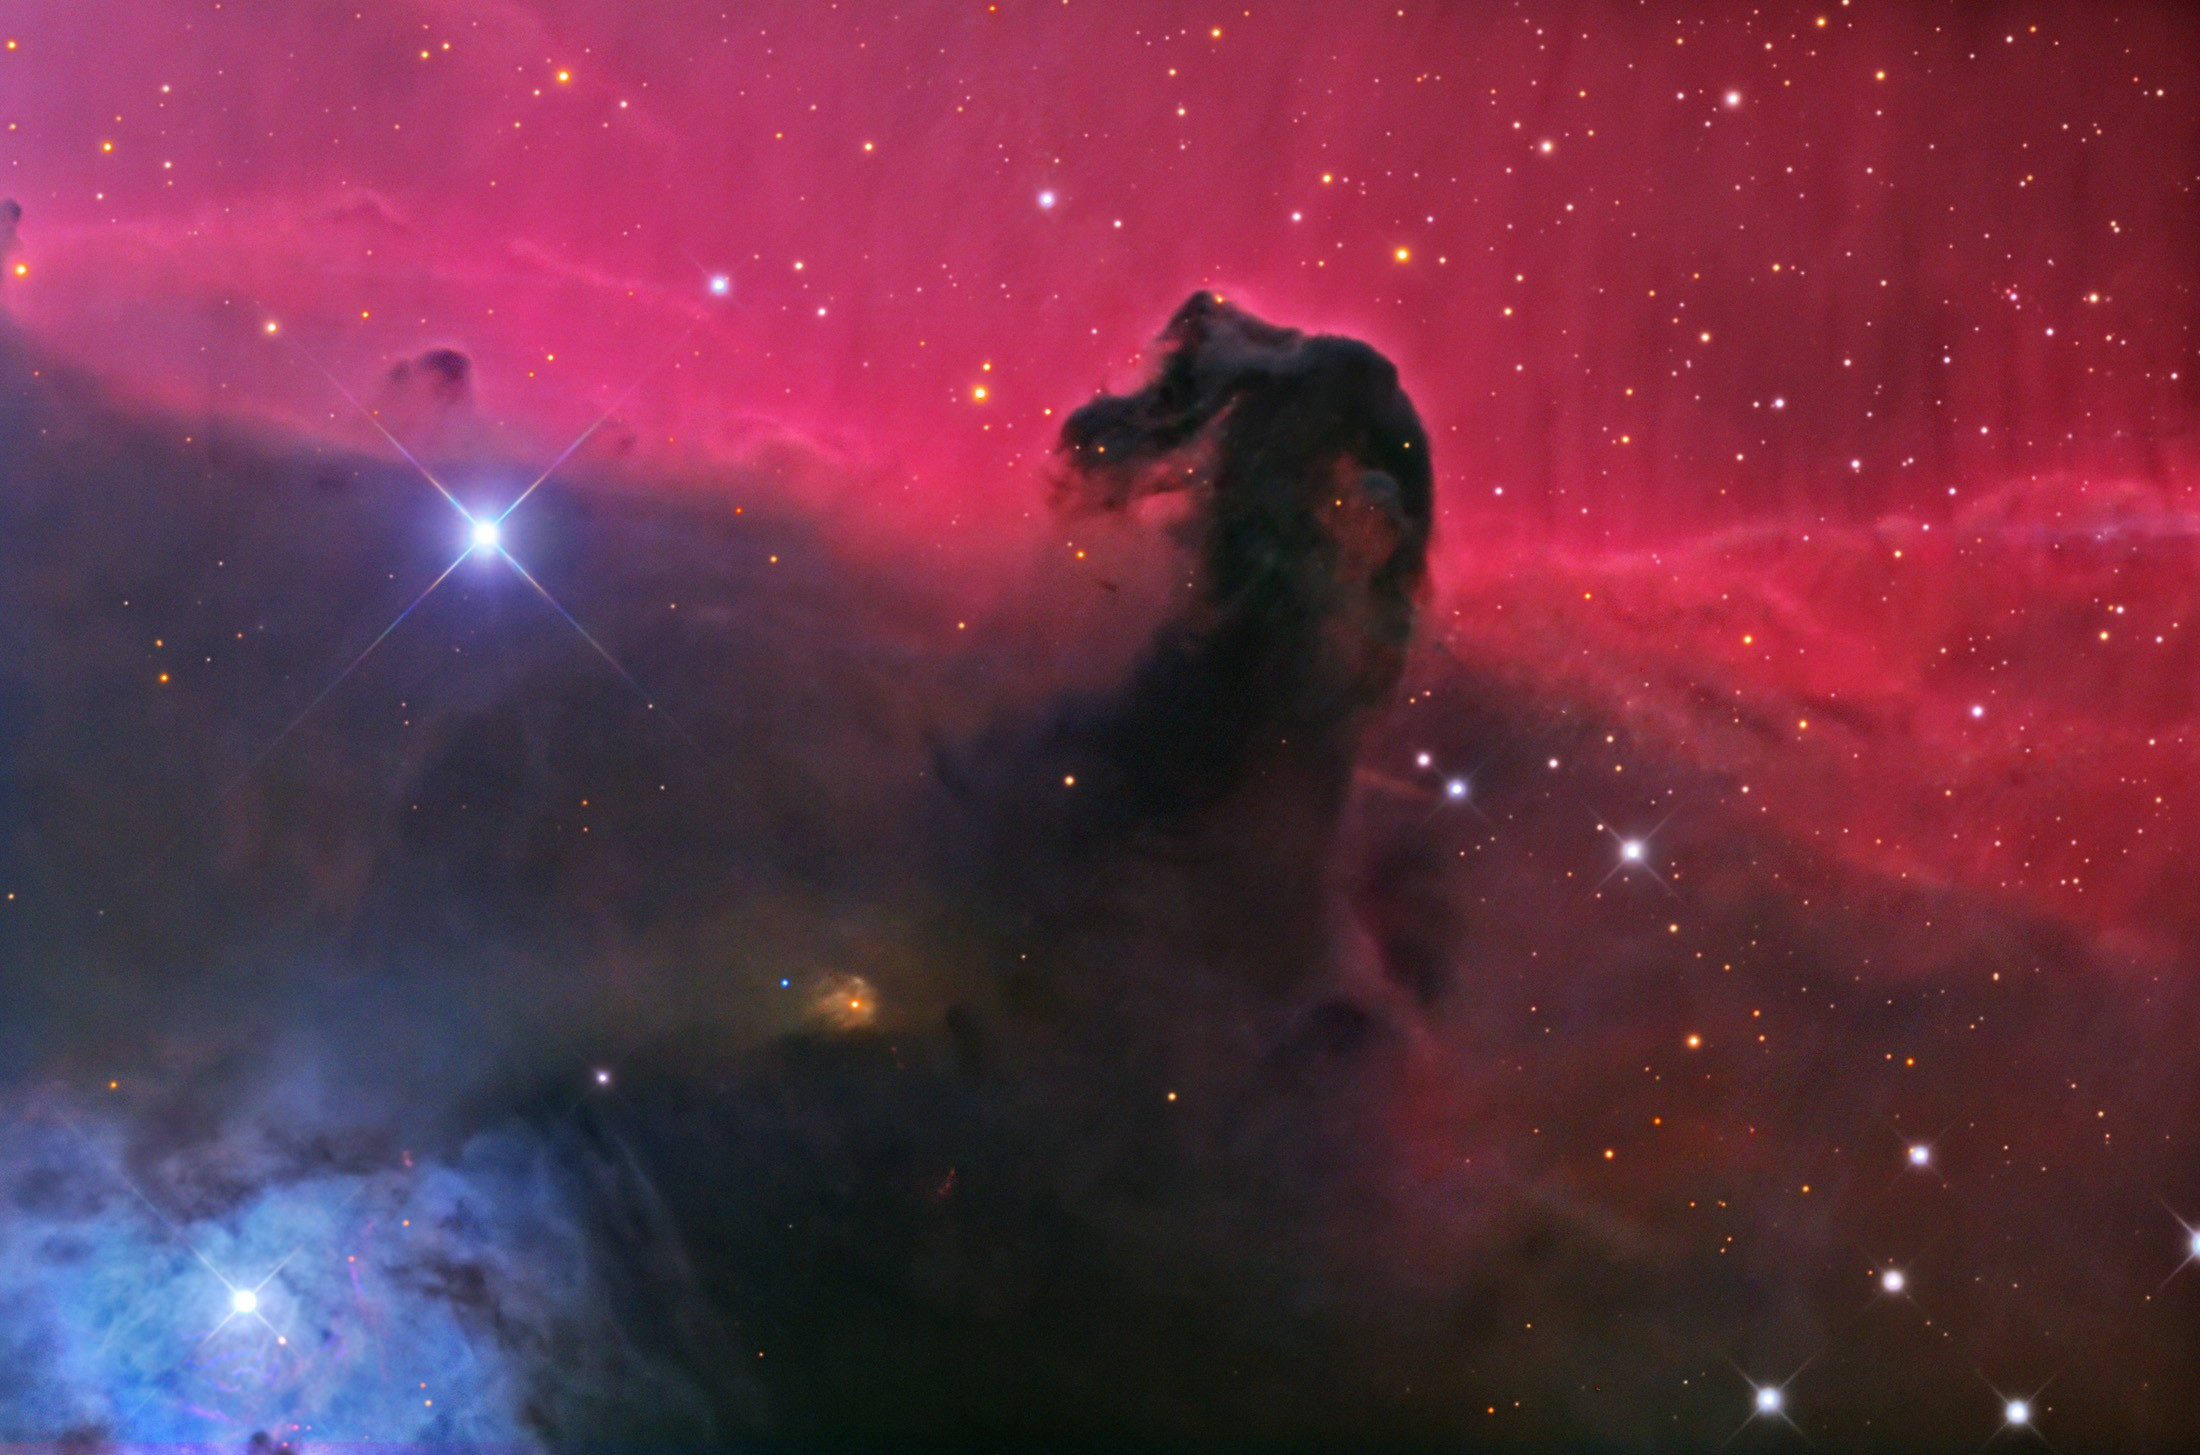 horsehead nebula pictures - HD2200×1455